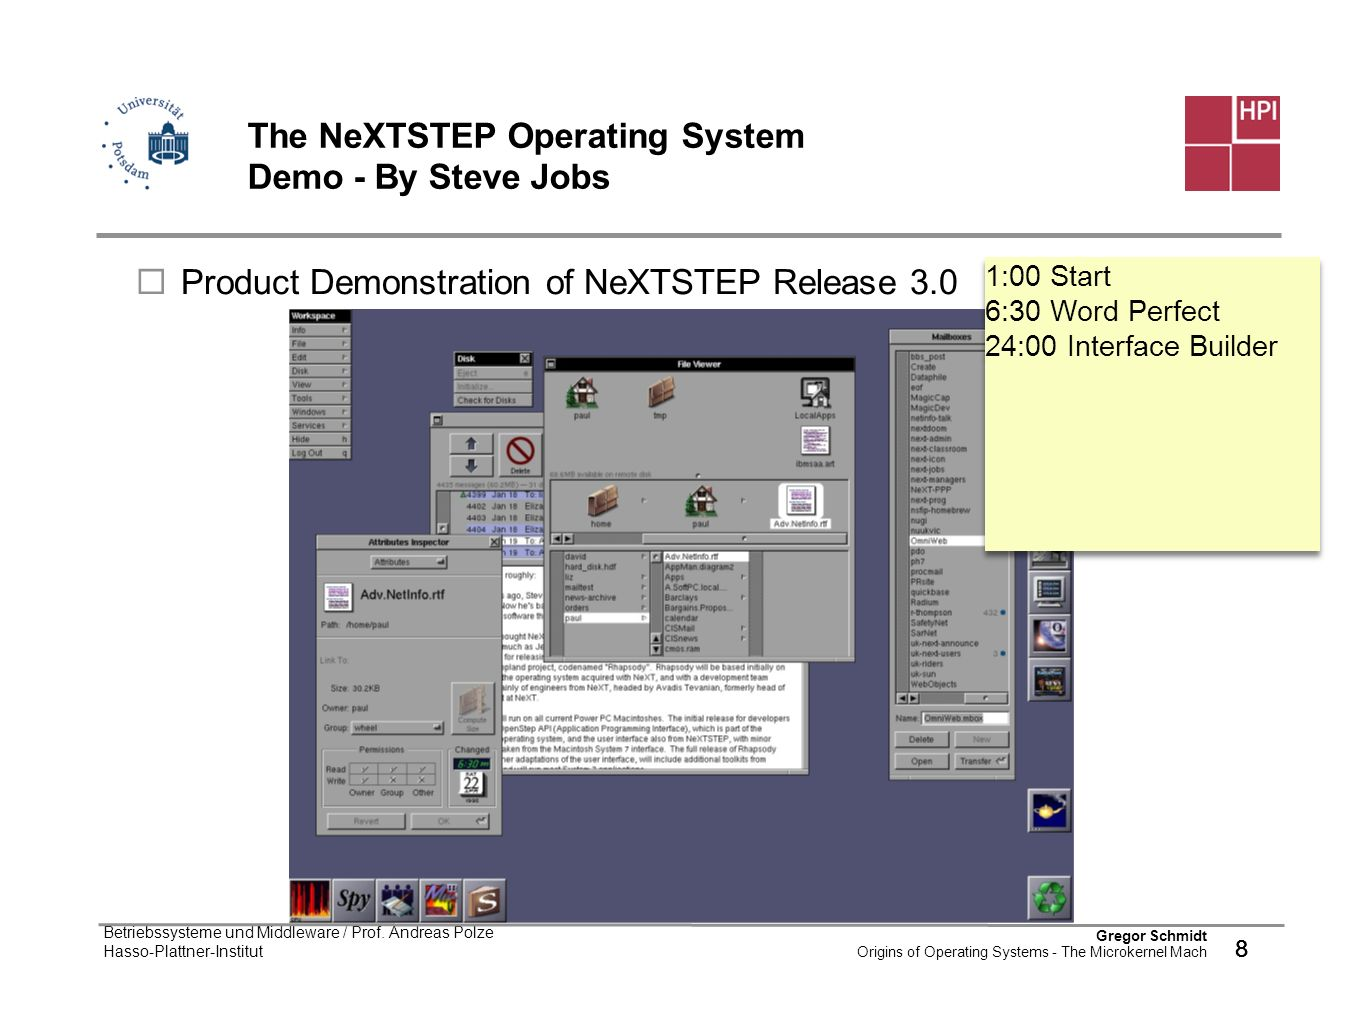 The NeXTSTEP Operating System Demo - By Steve Jobs